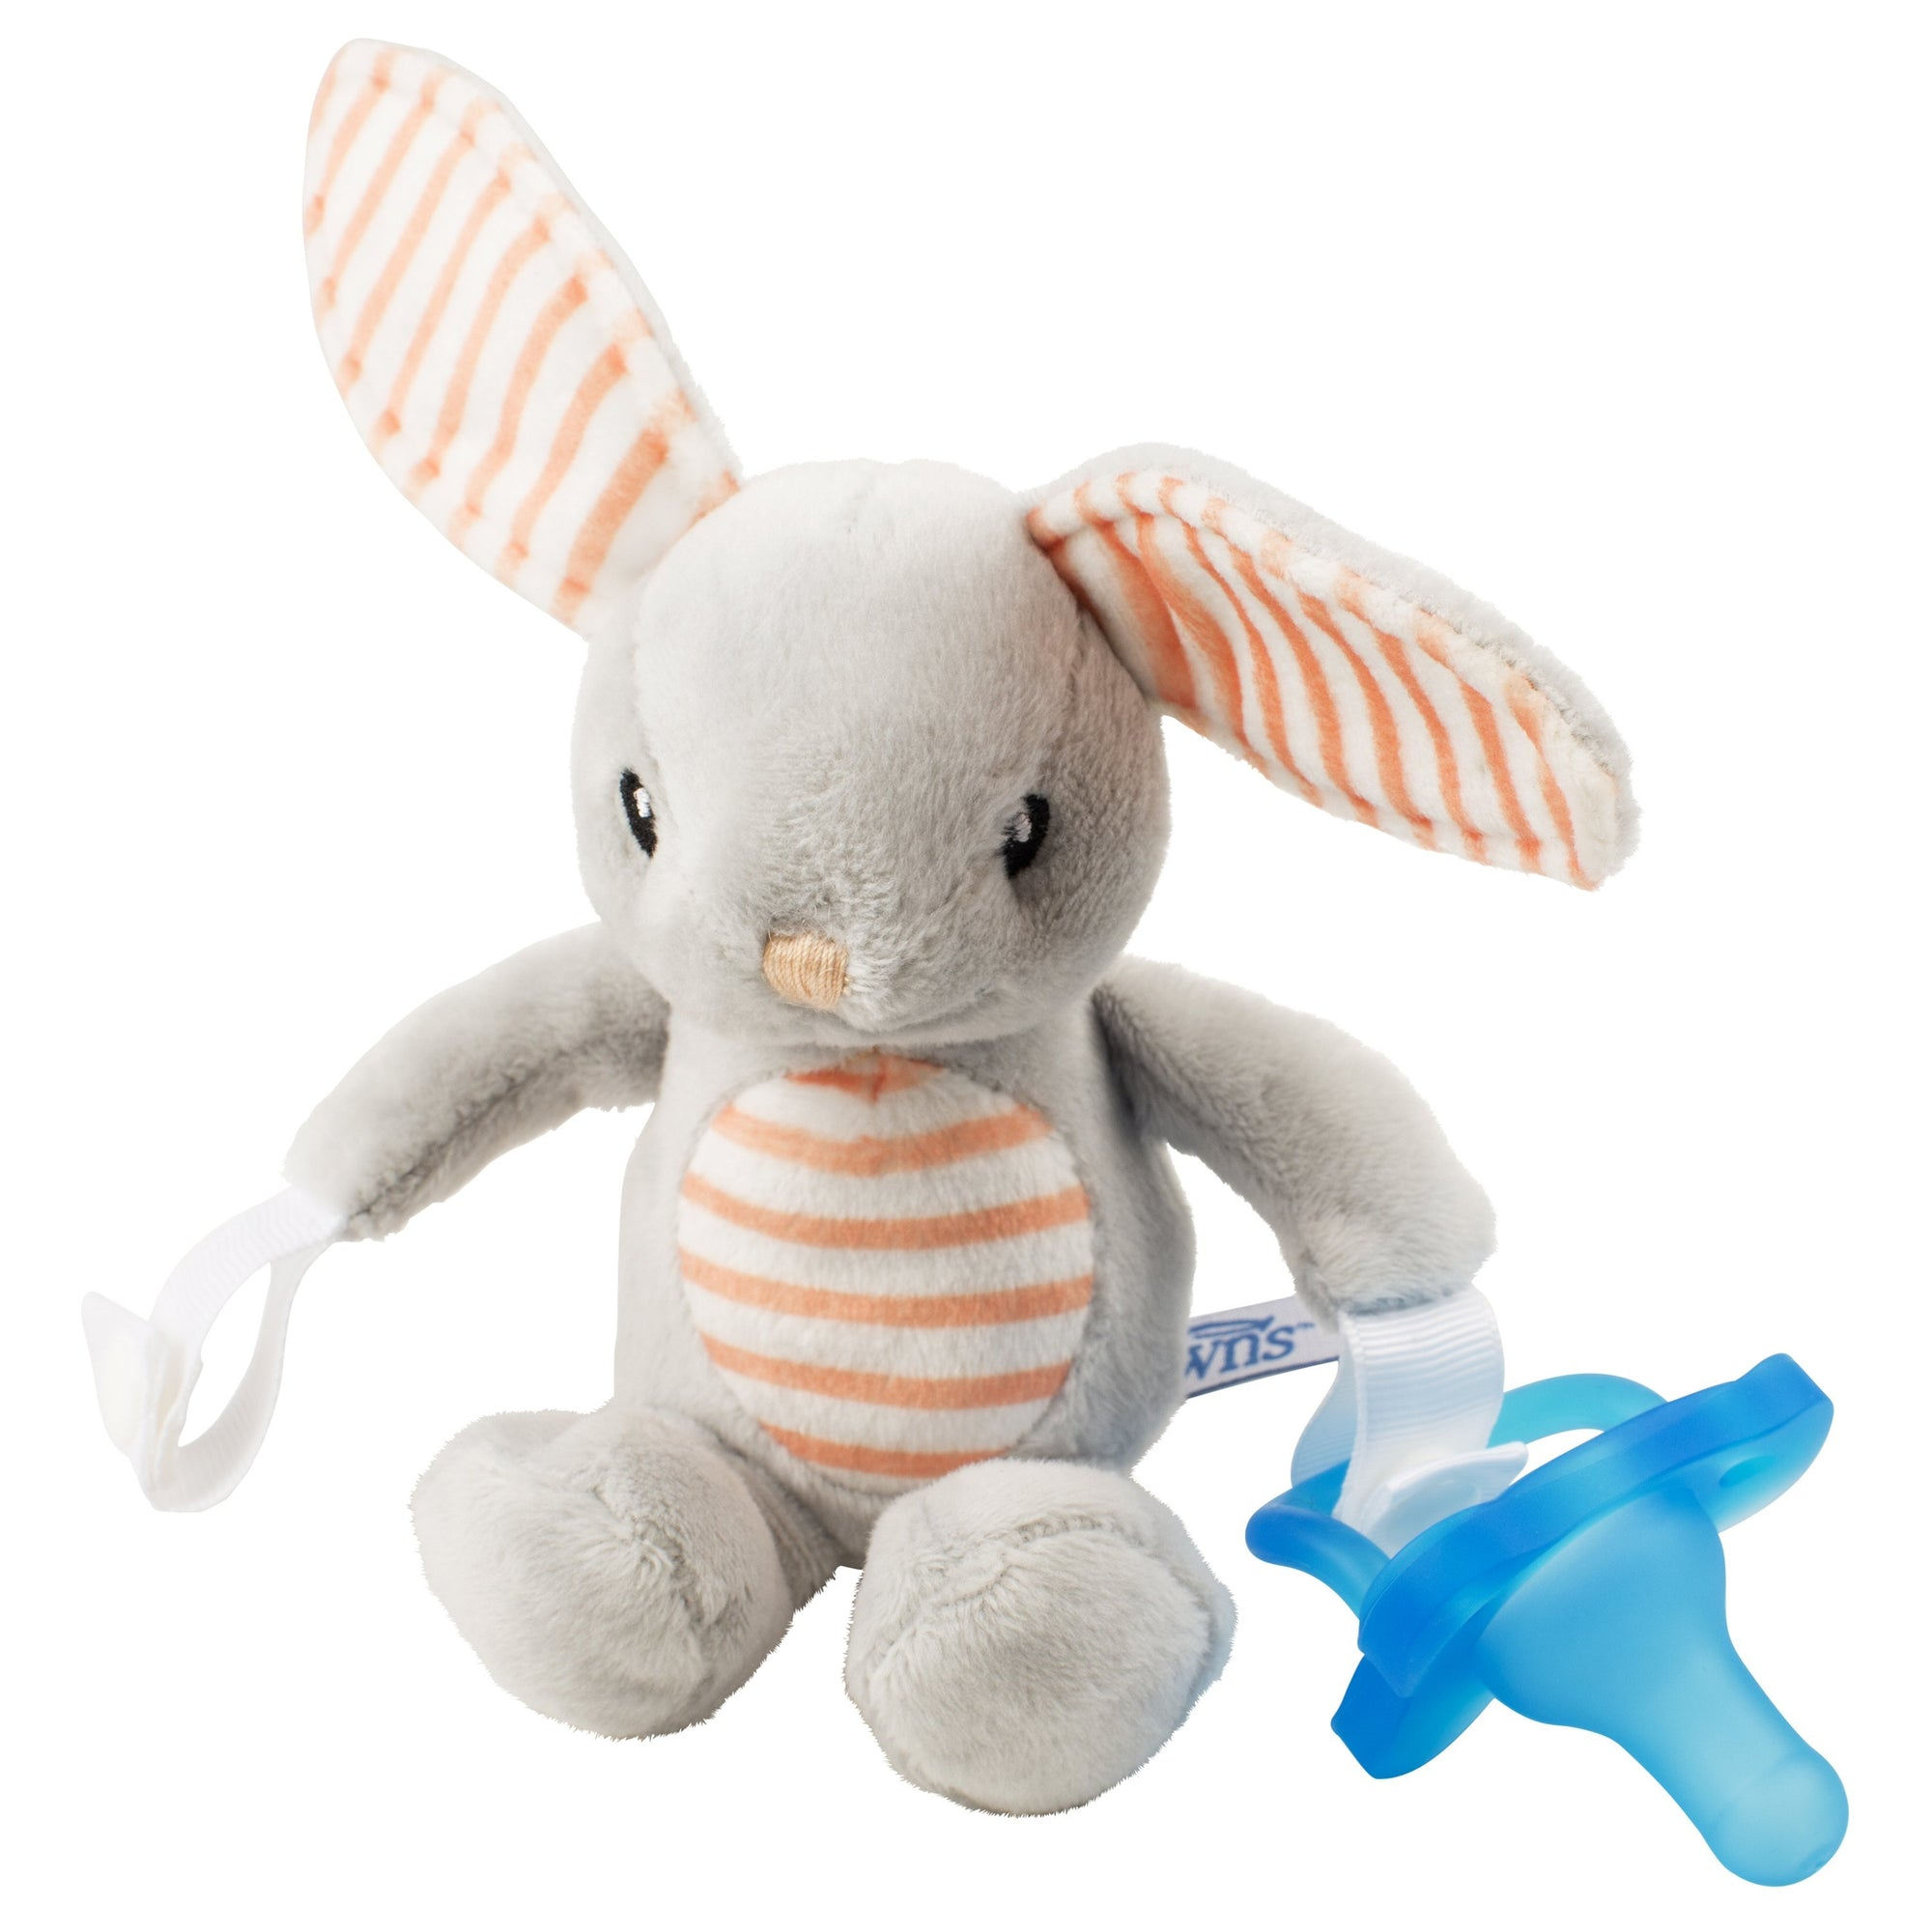 Dr. Brown's Bunny Lovey with Blue One Piece Pacifier-Pacifier-Mother and Baby Shop Kenya's #1 Online Baby Shop